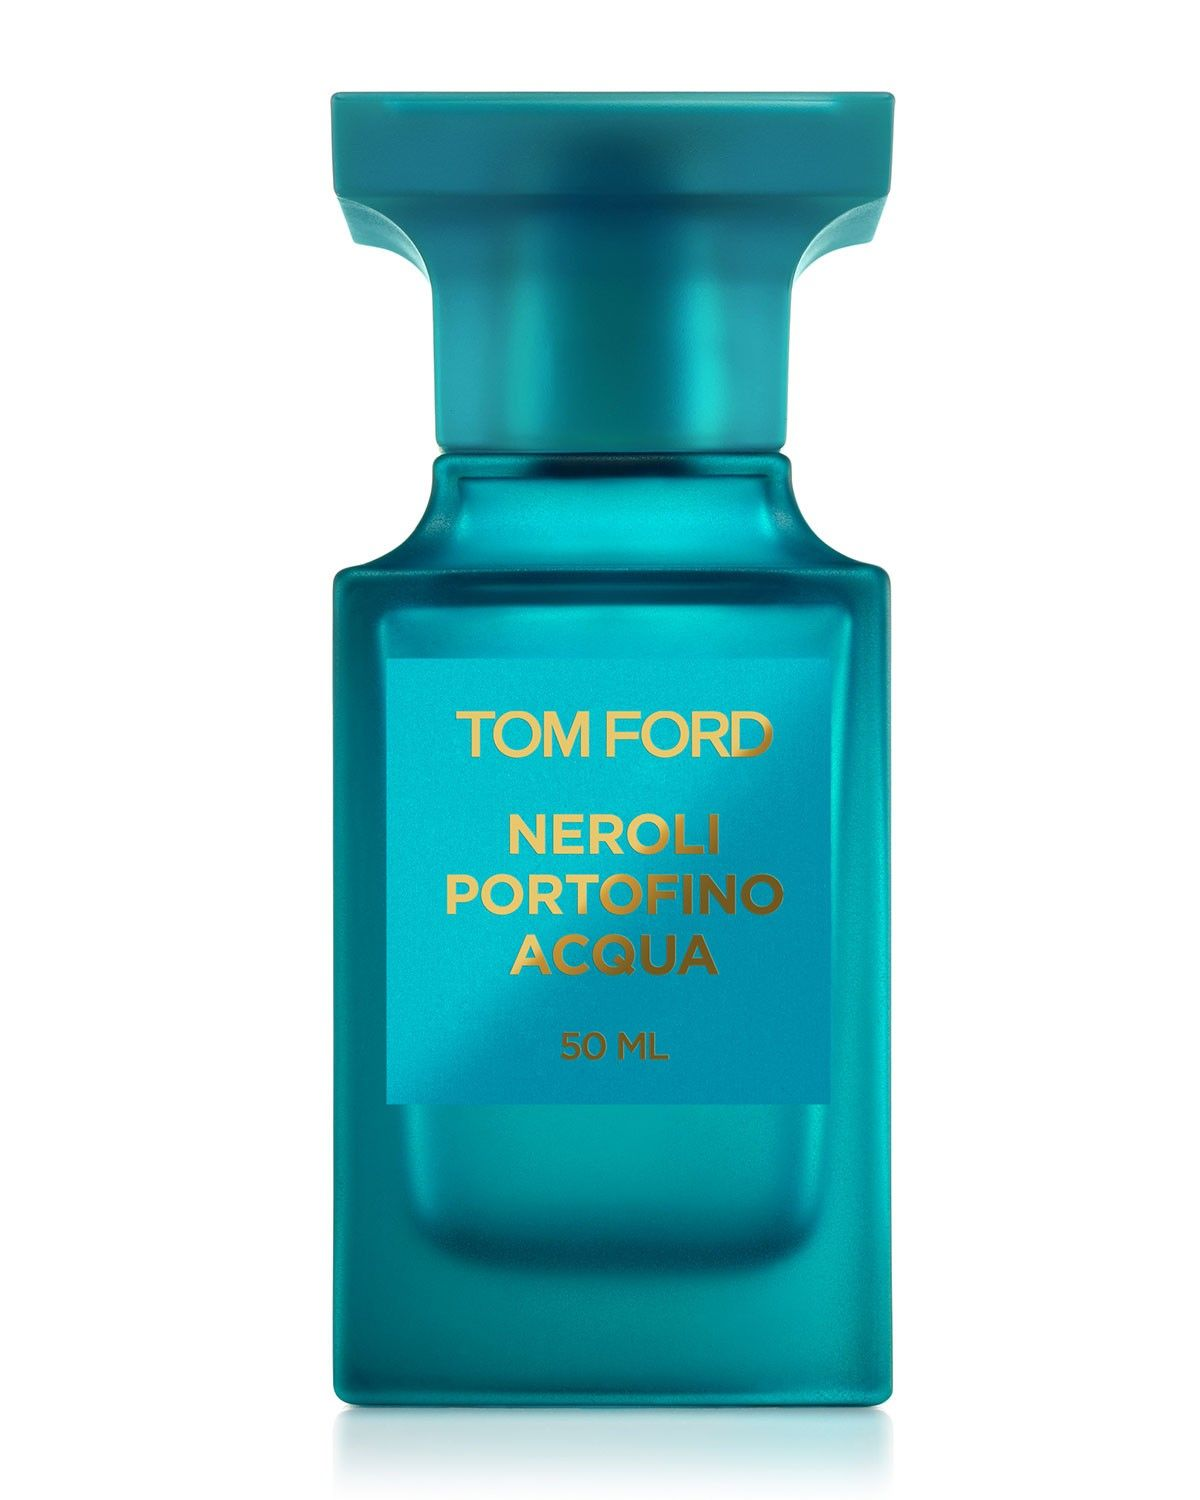 Tom Ford - Neroli Portofino Aqua Parfüm, 50 ml